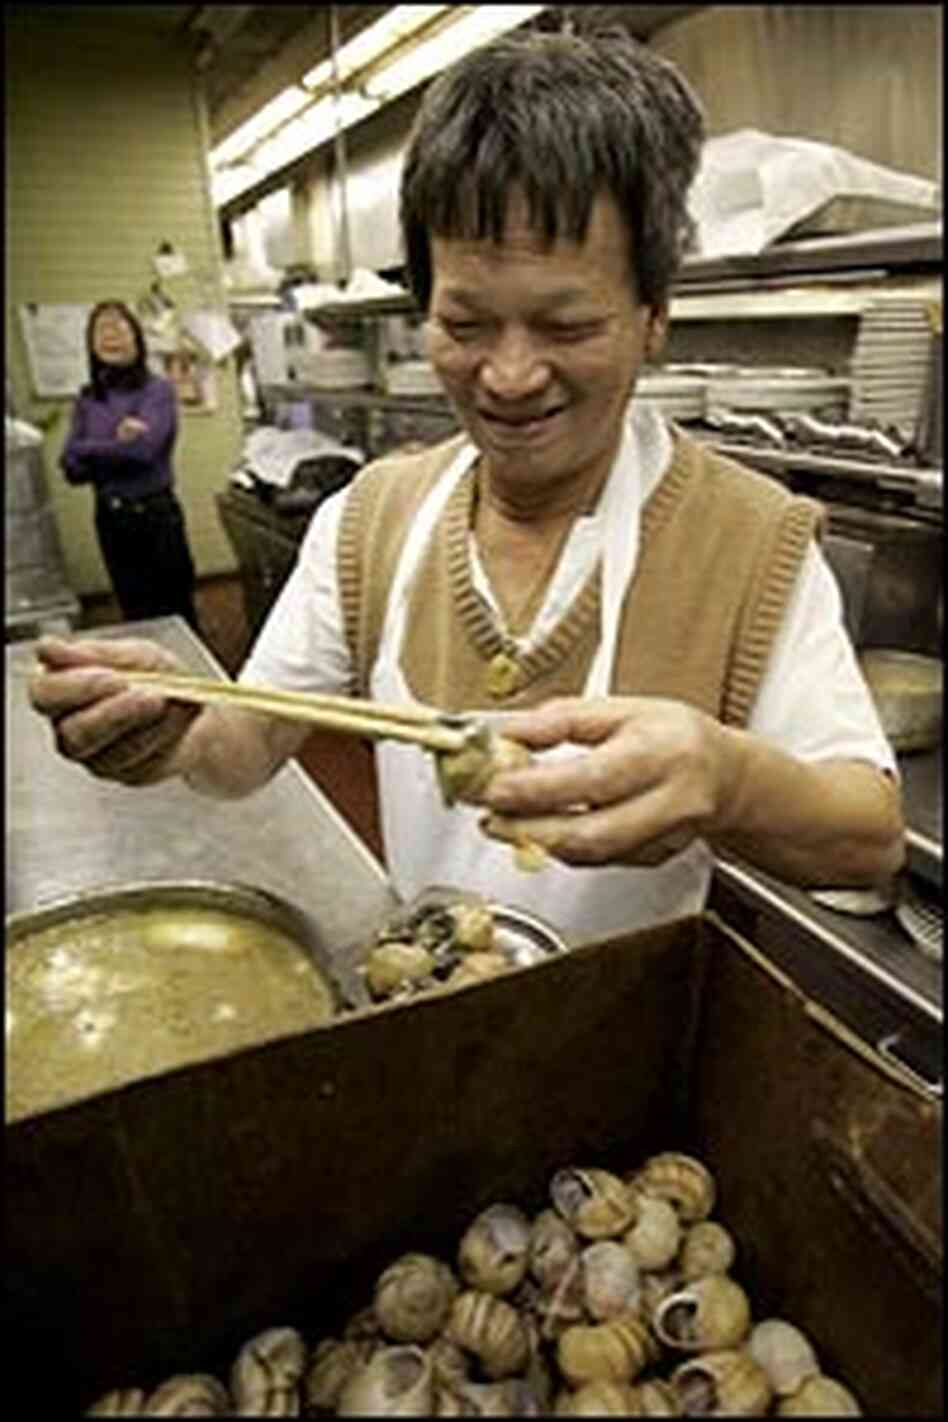 Kenny Auyeong prepares the Imperial Dynasty's famous escargot.